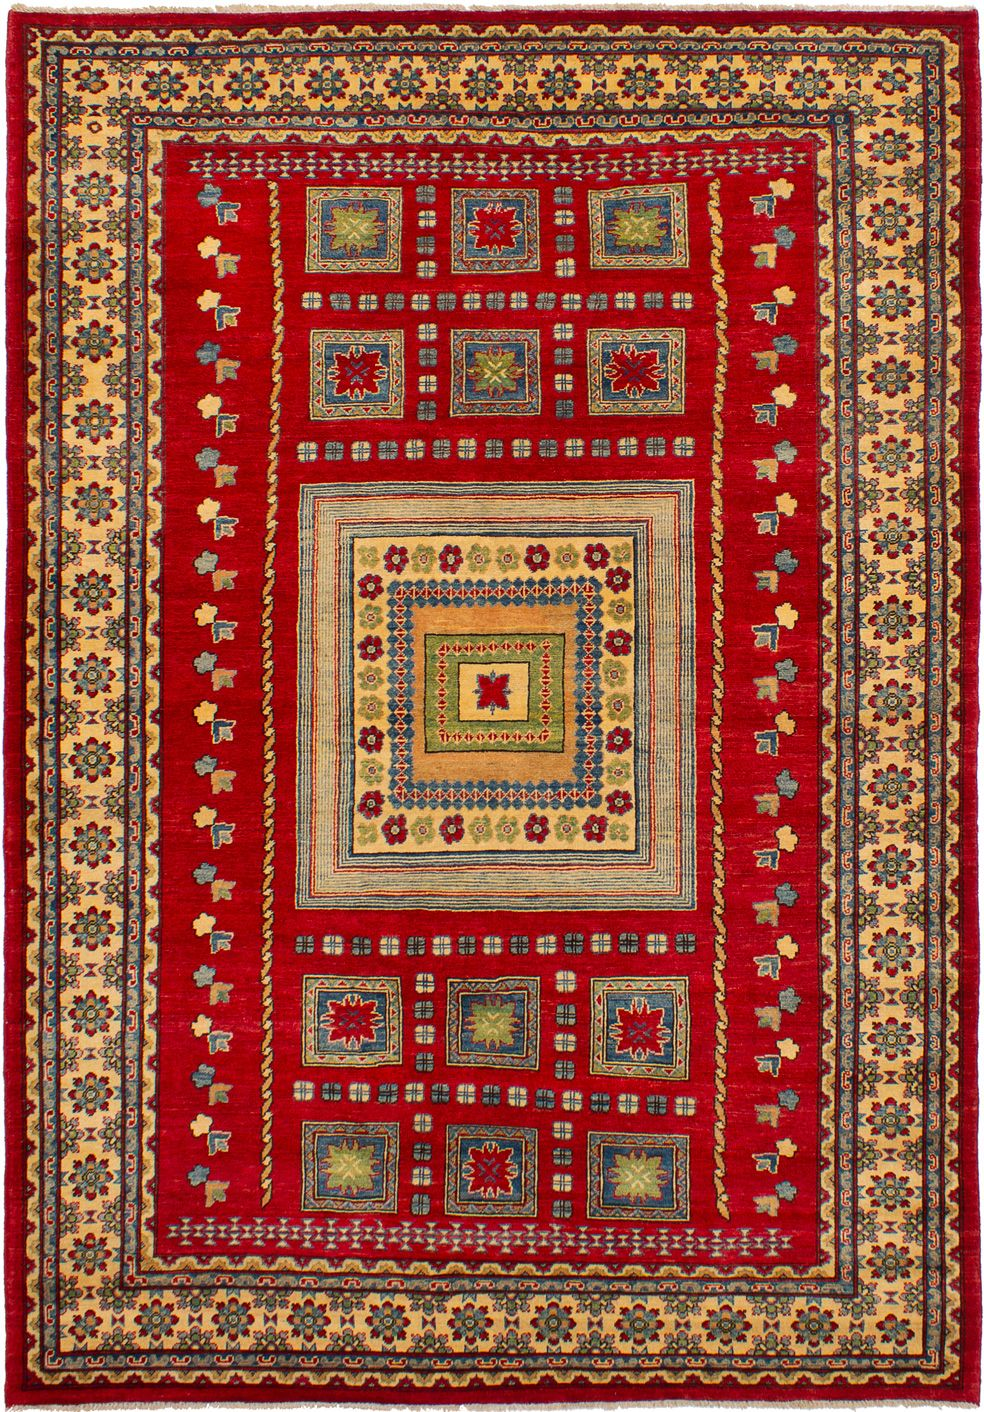 """Hand-knotted Finest Gazni Red Wool Rug 6'8"""" x 9'8""""  Size: 6'8"""" x 9'8"""""""